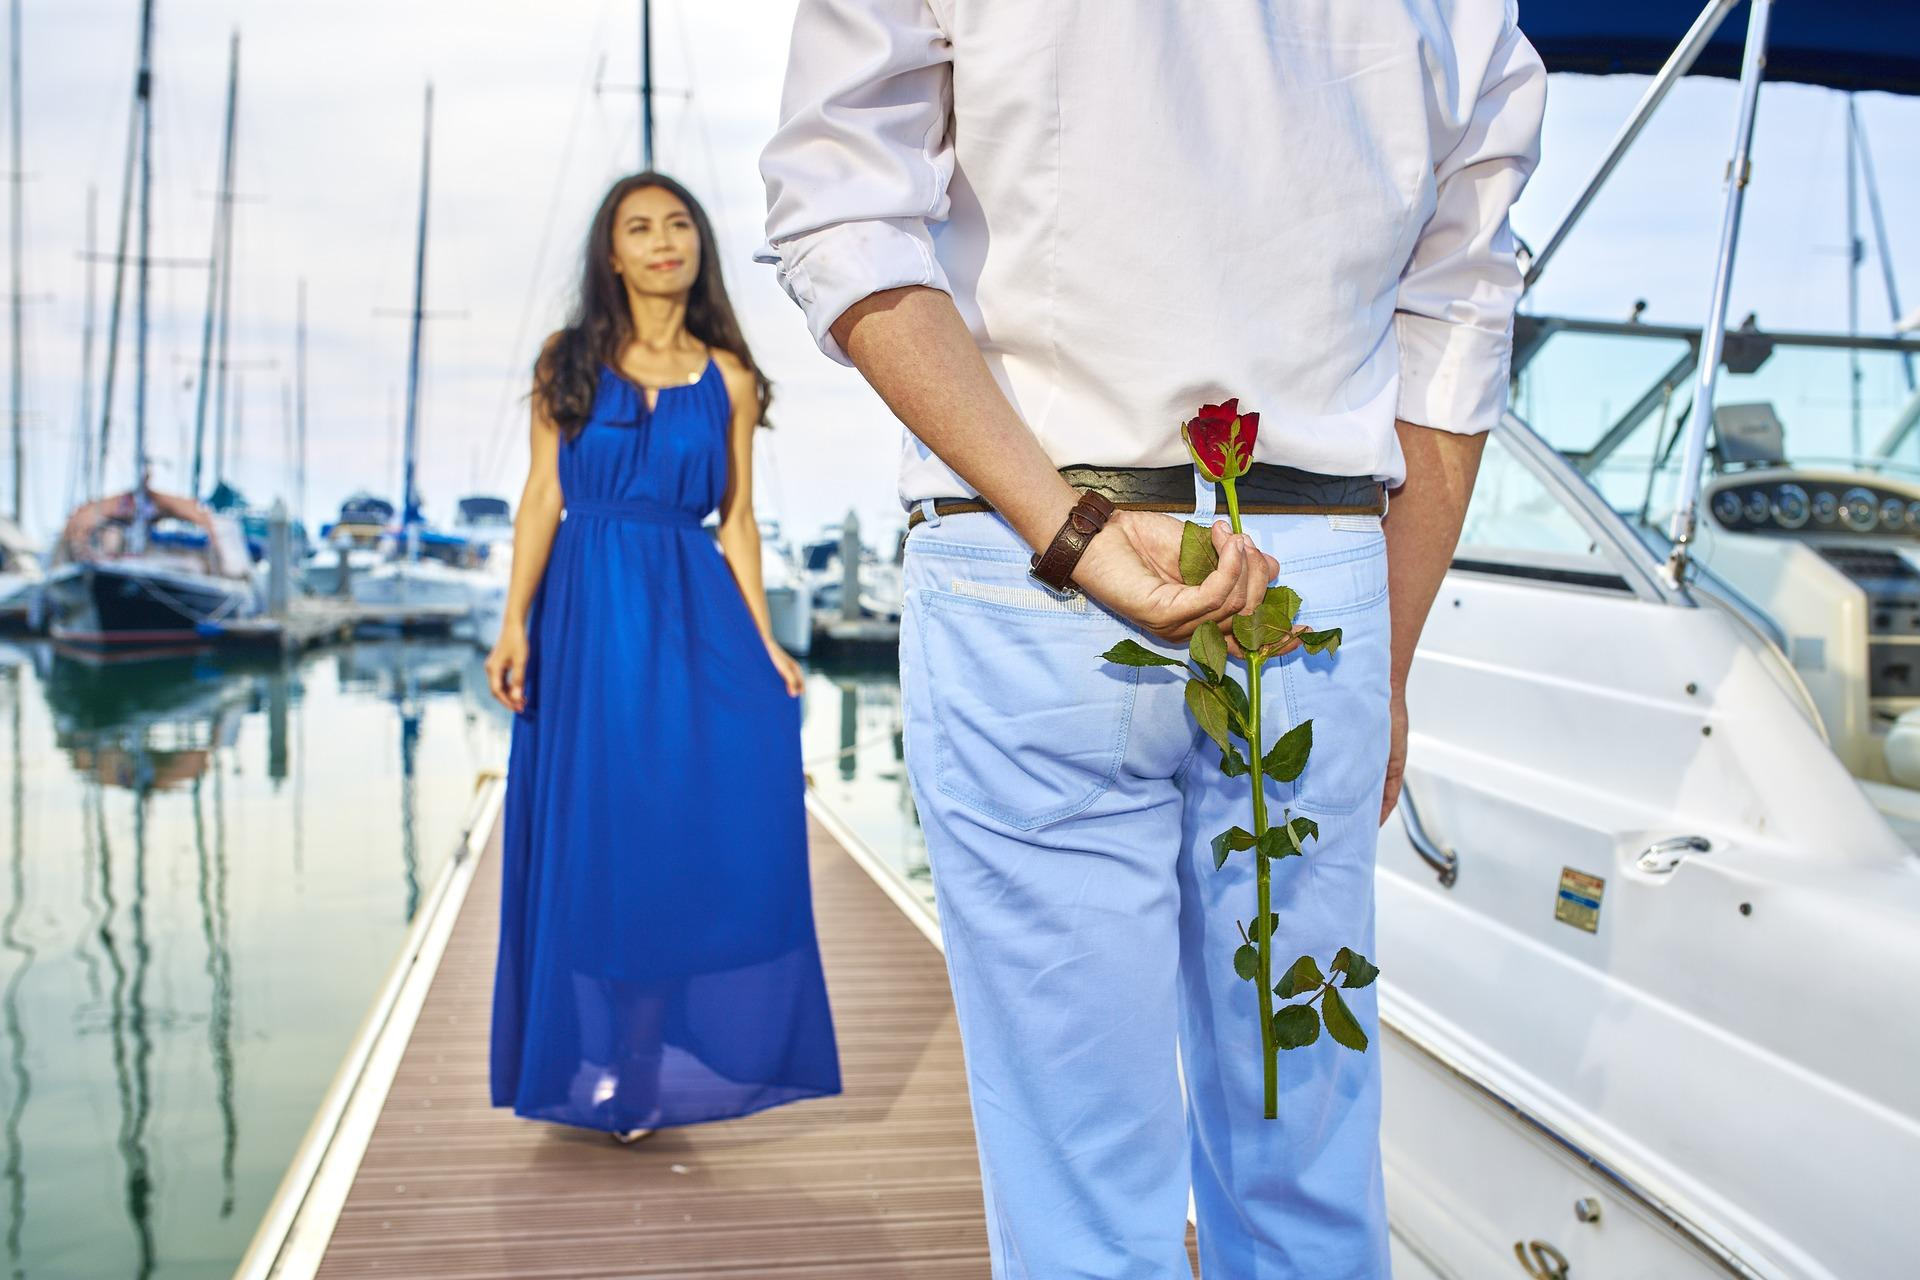 Husband surprising wife with rose and a chartered yacht